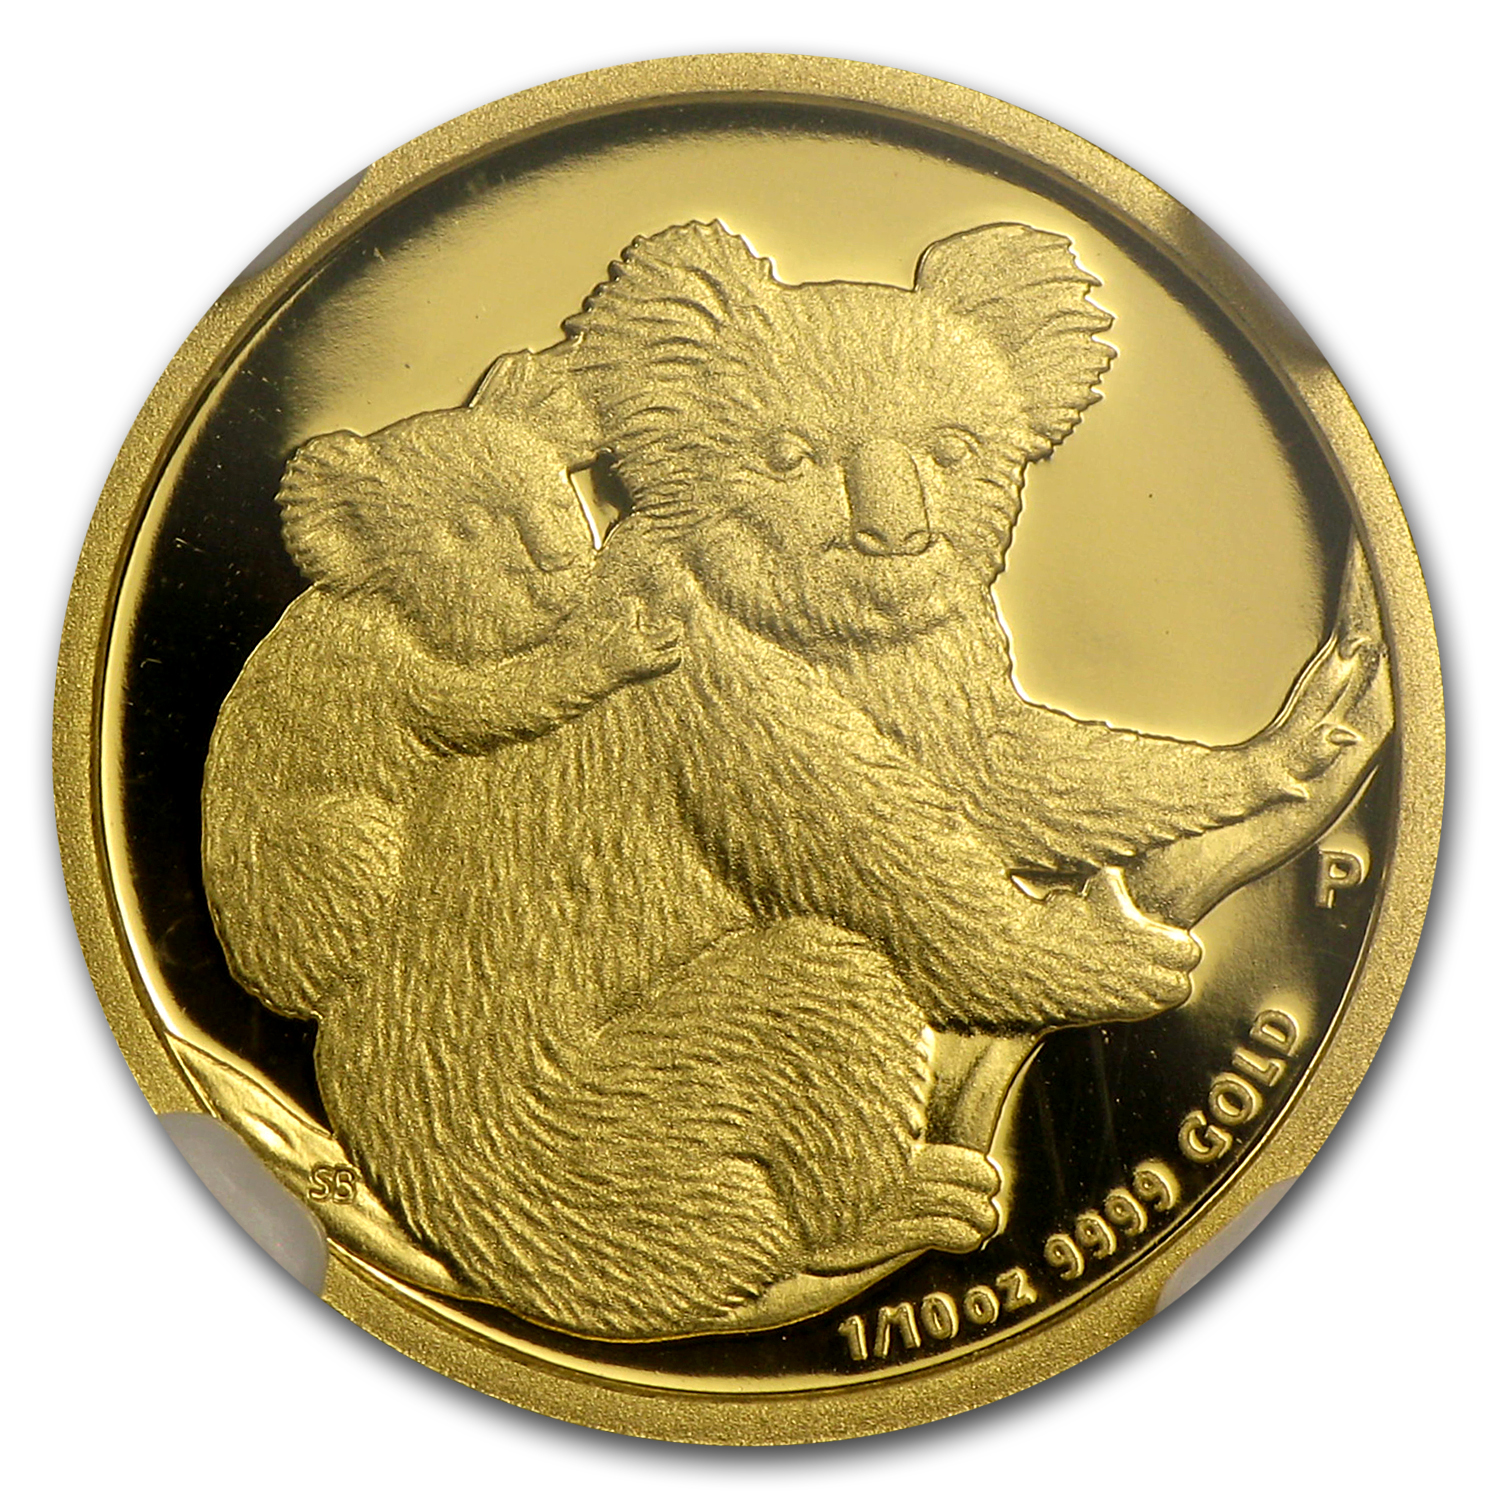 2008 1/10 oz Proof Gold Koala PF-70 UCAM NGC